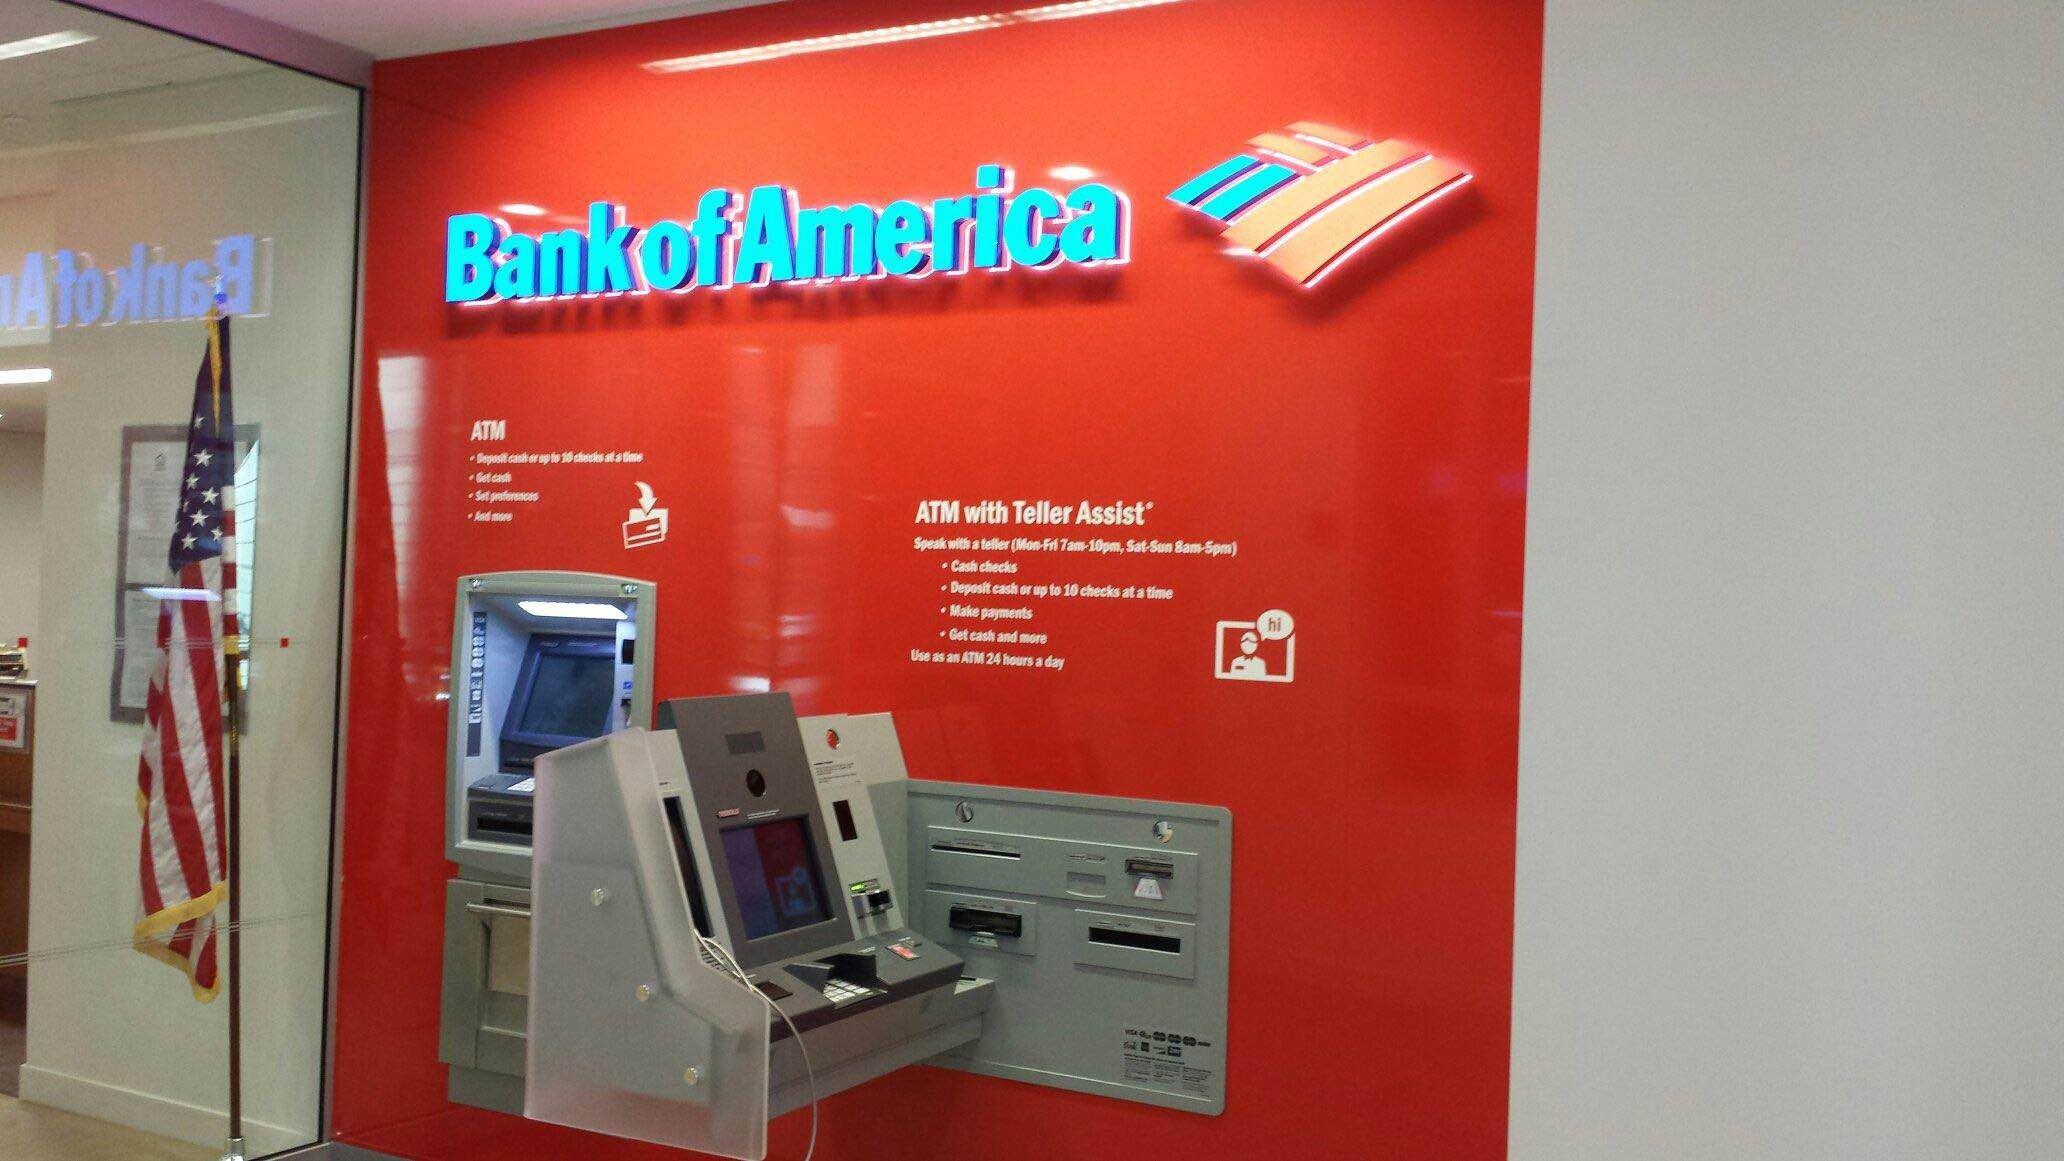 Downtown Norfolk Financial Center, Bank of America introduces state-of-the-art ATM technology